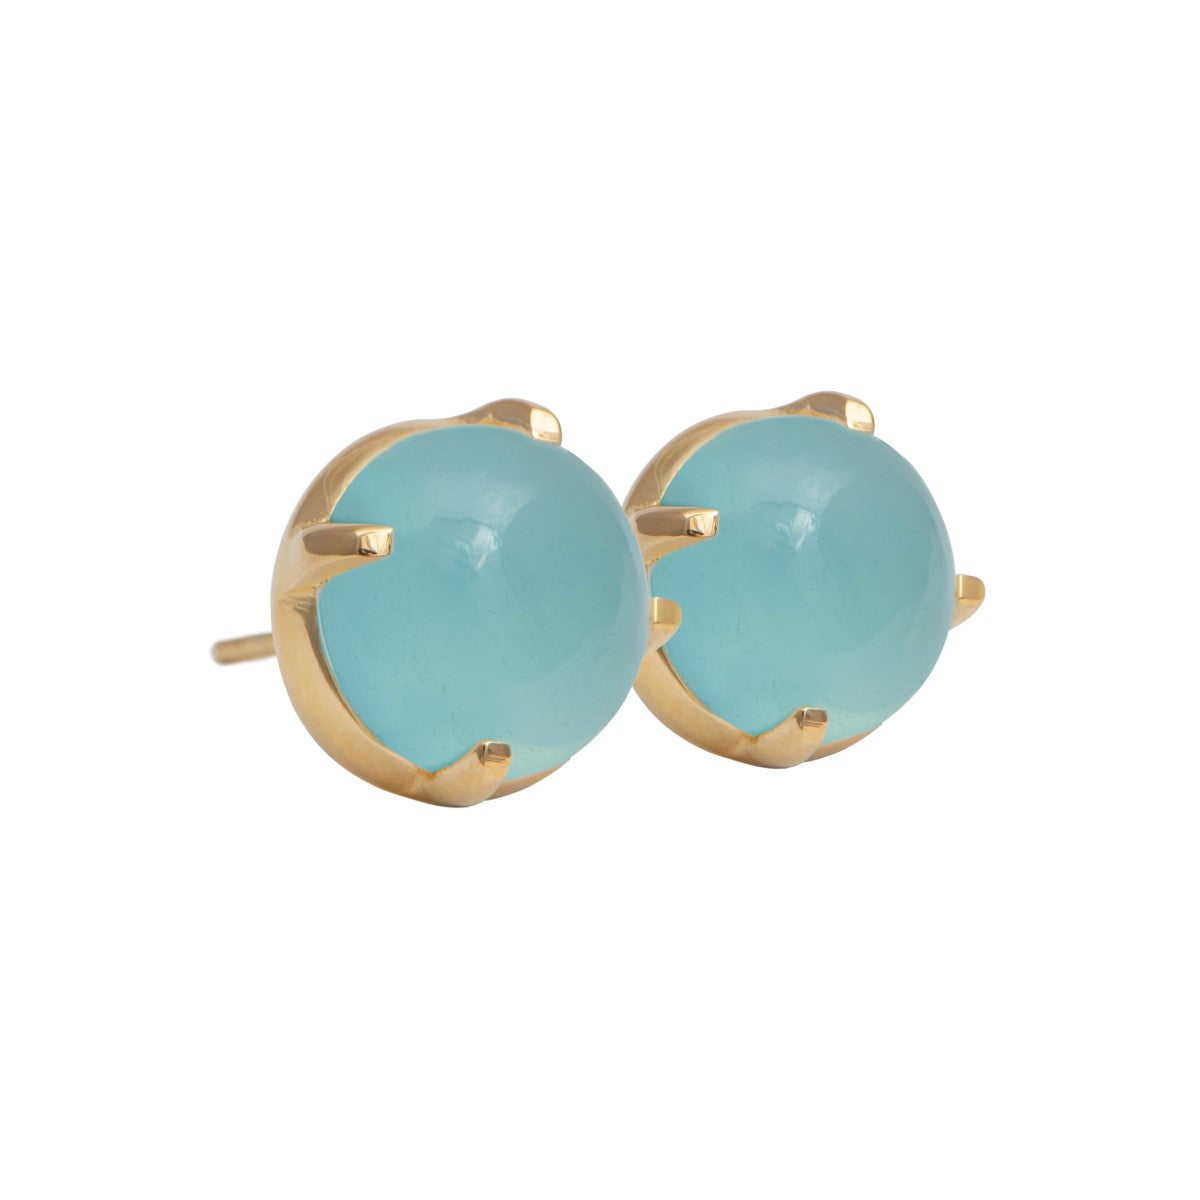 Round Cabochon Aqua Chalcedony Stud Earrings in Gold Plated Sterling Silver